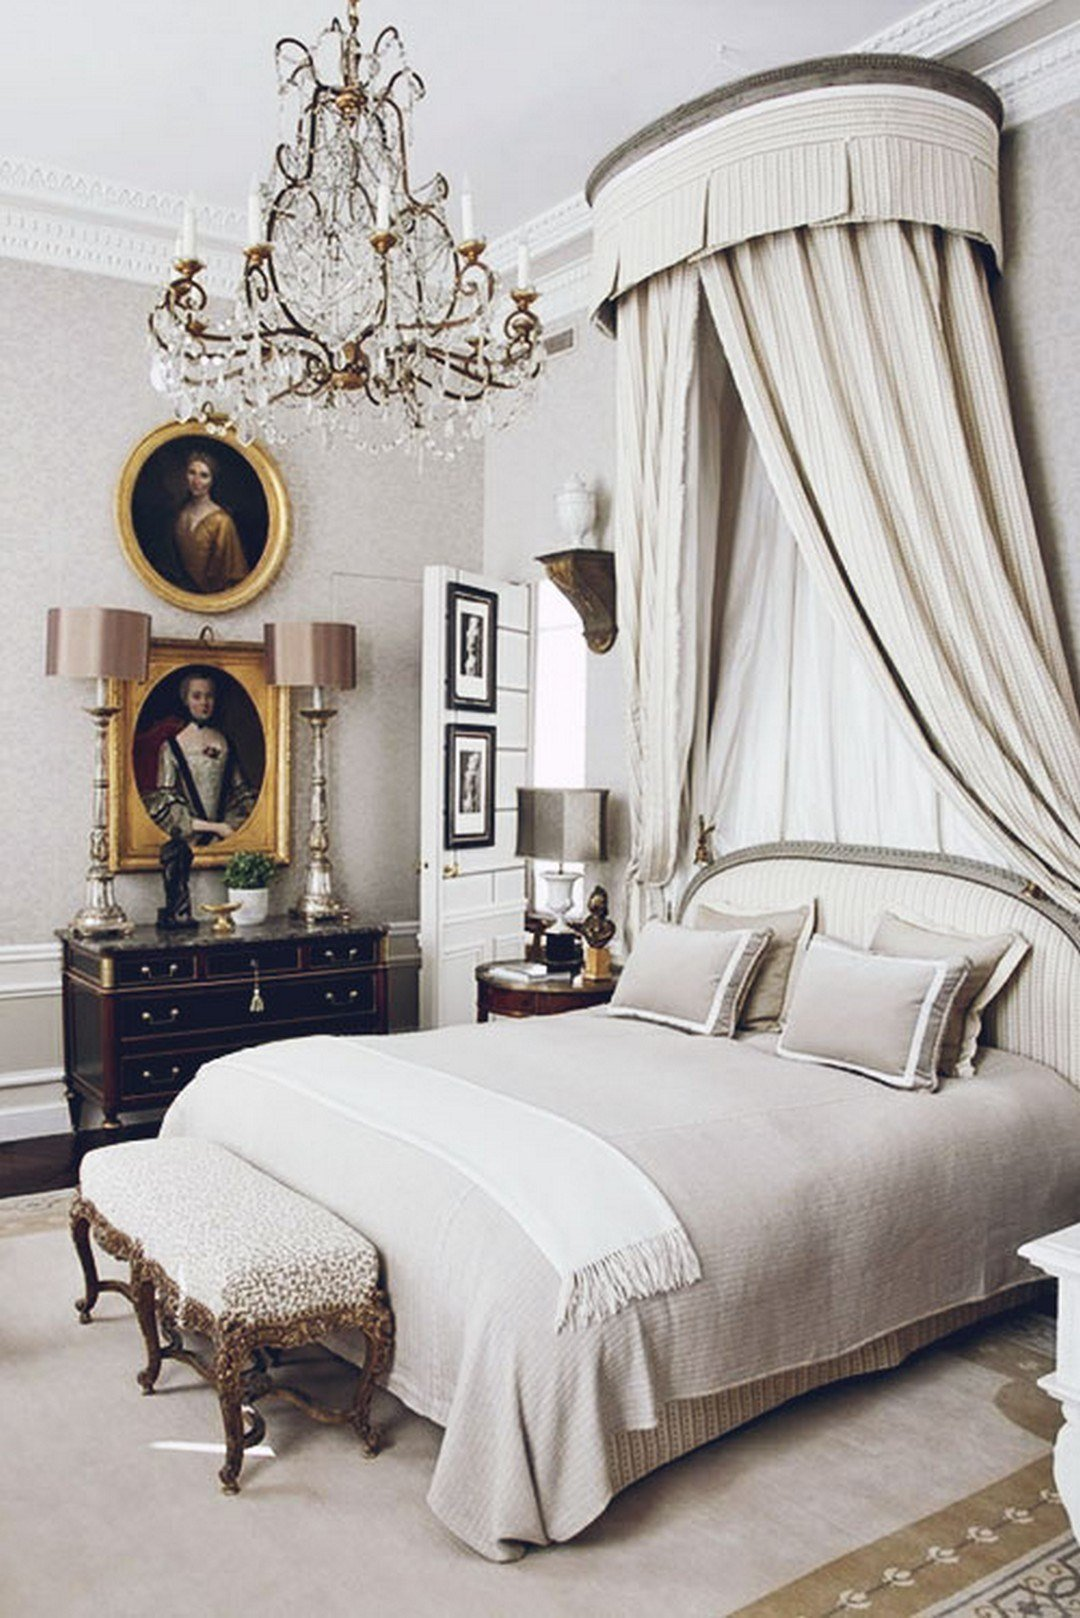 Best 29 Luxurious Parisian Style Home Decor The Master Of Harmonious Living Goodnewsarchitecture With Pictures